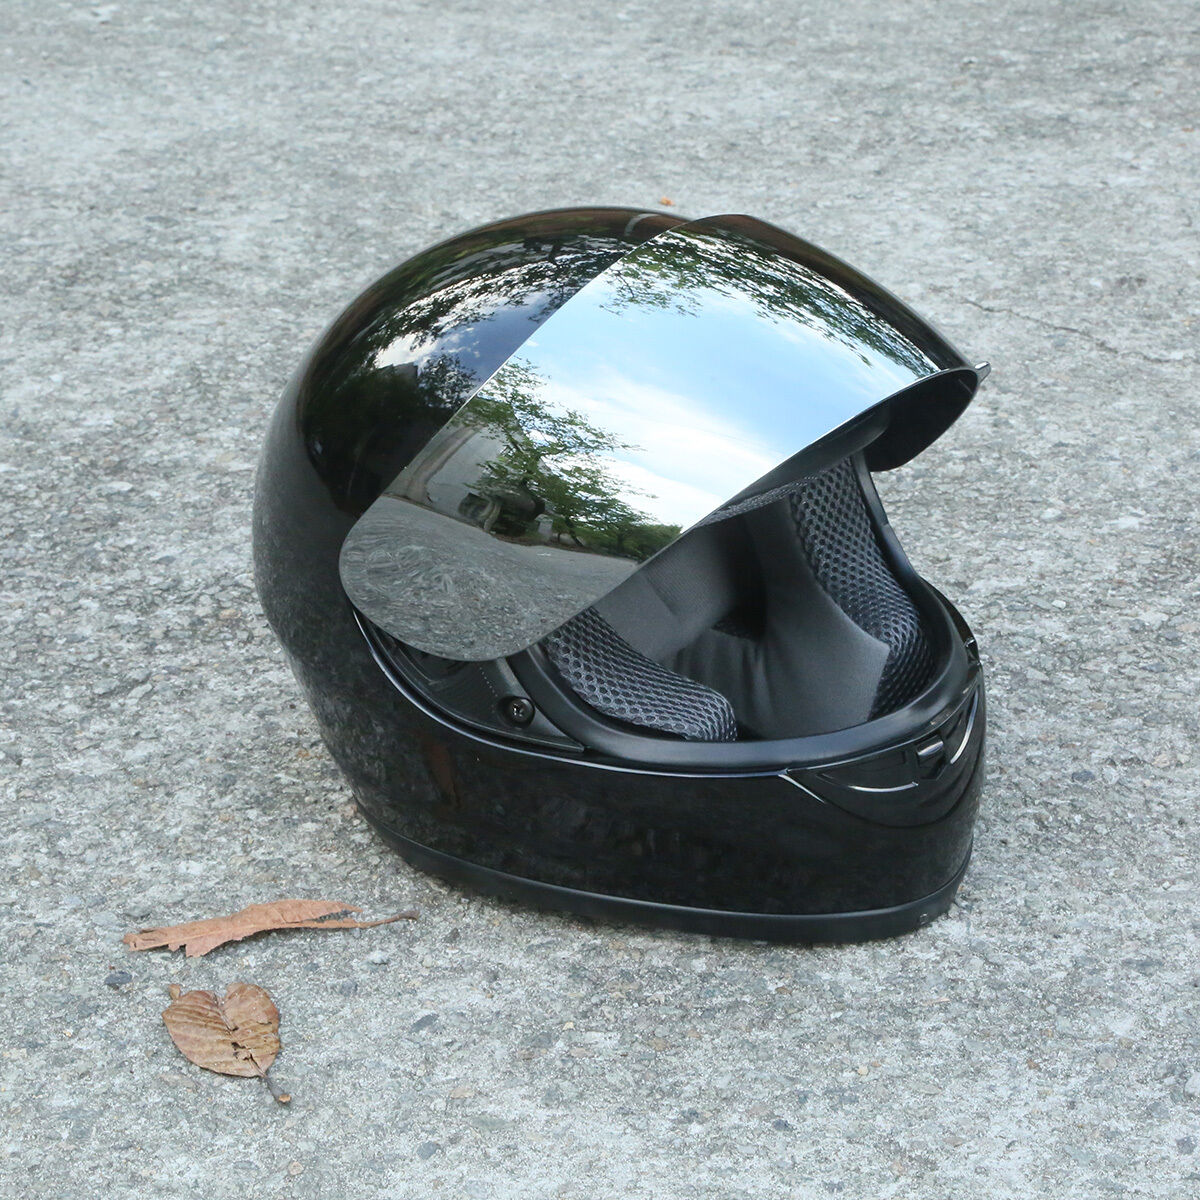 Hot-Gloss-Black-Full-Face-Mirror-Visor-S